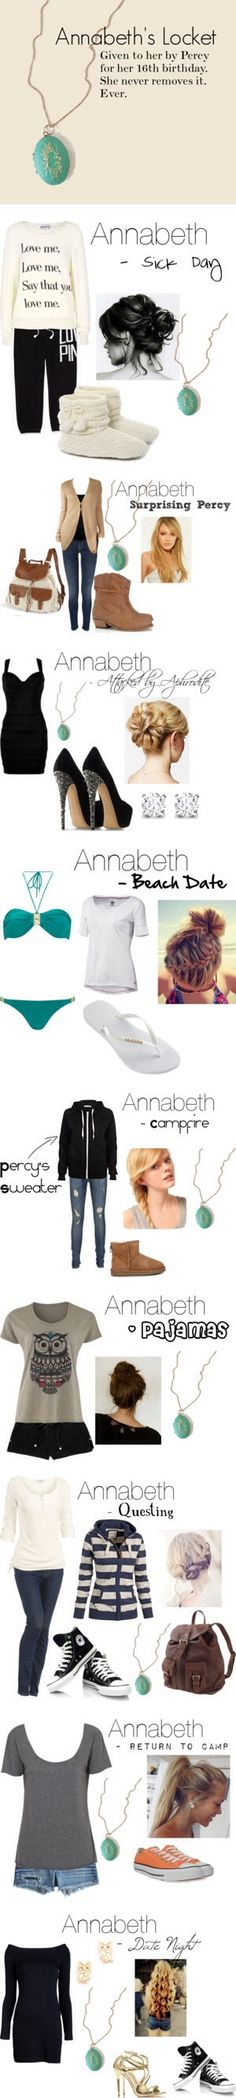 Annabeth's wardrobe- so cool and accurate :) love the necklace part!